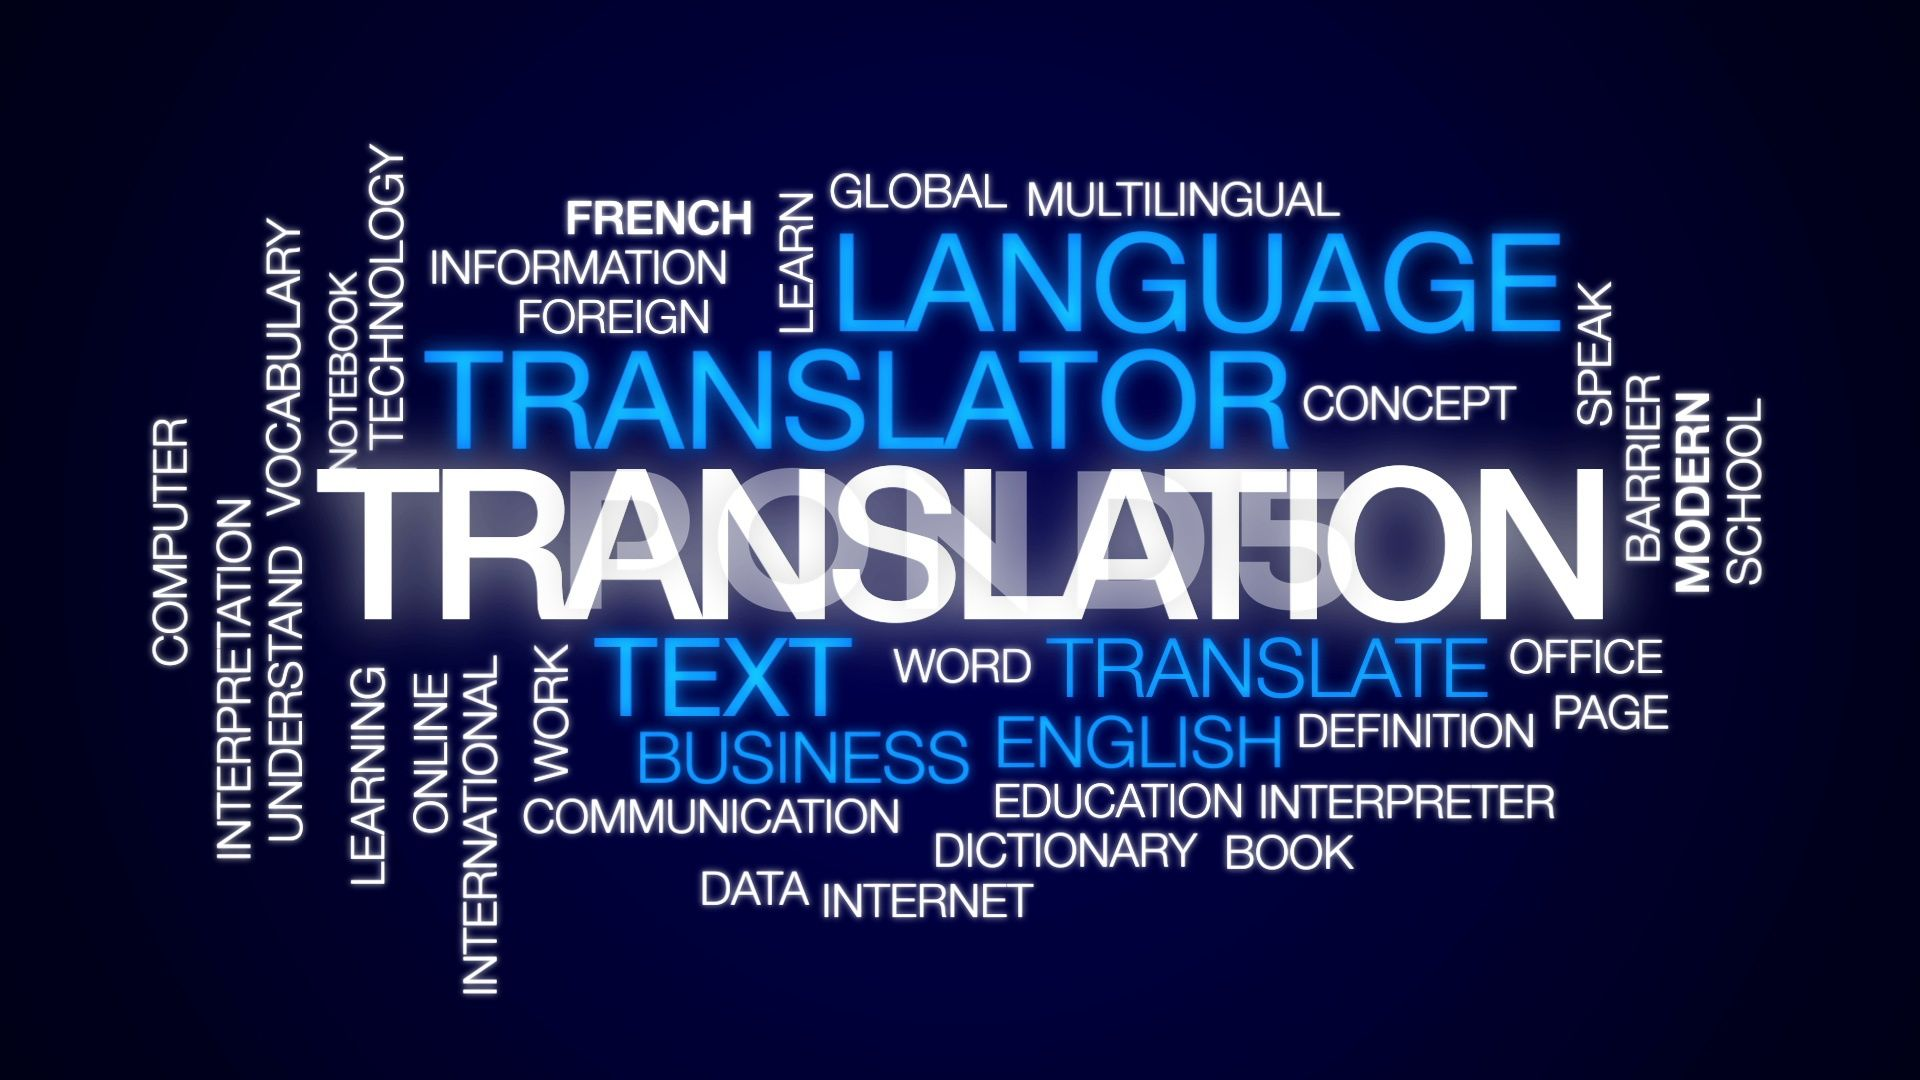 The services of a professional translation agency like Bubbles are very important